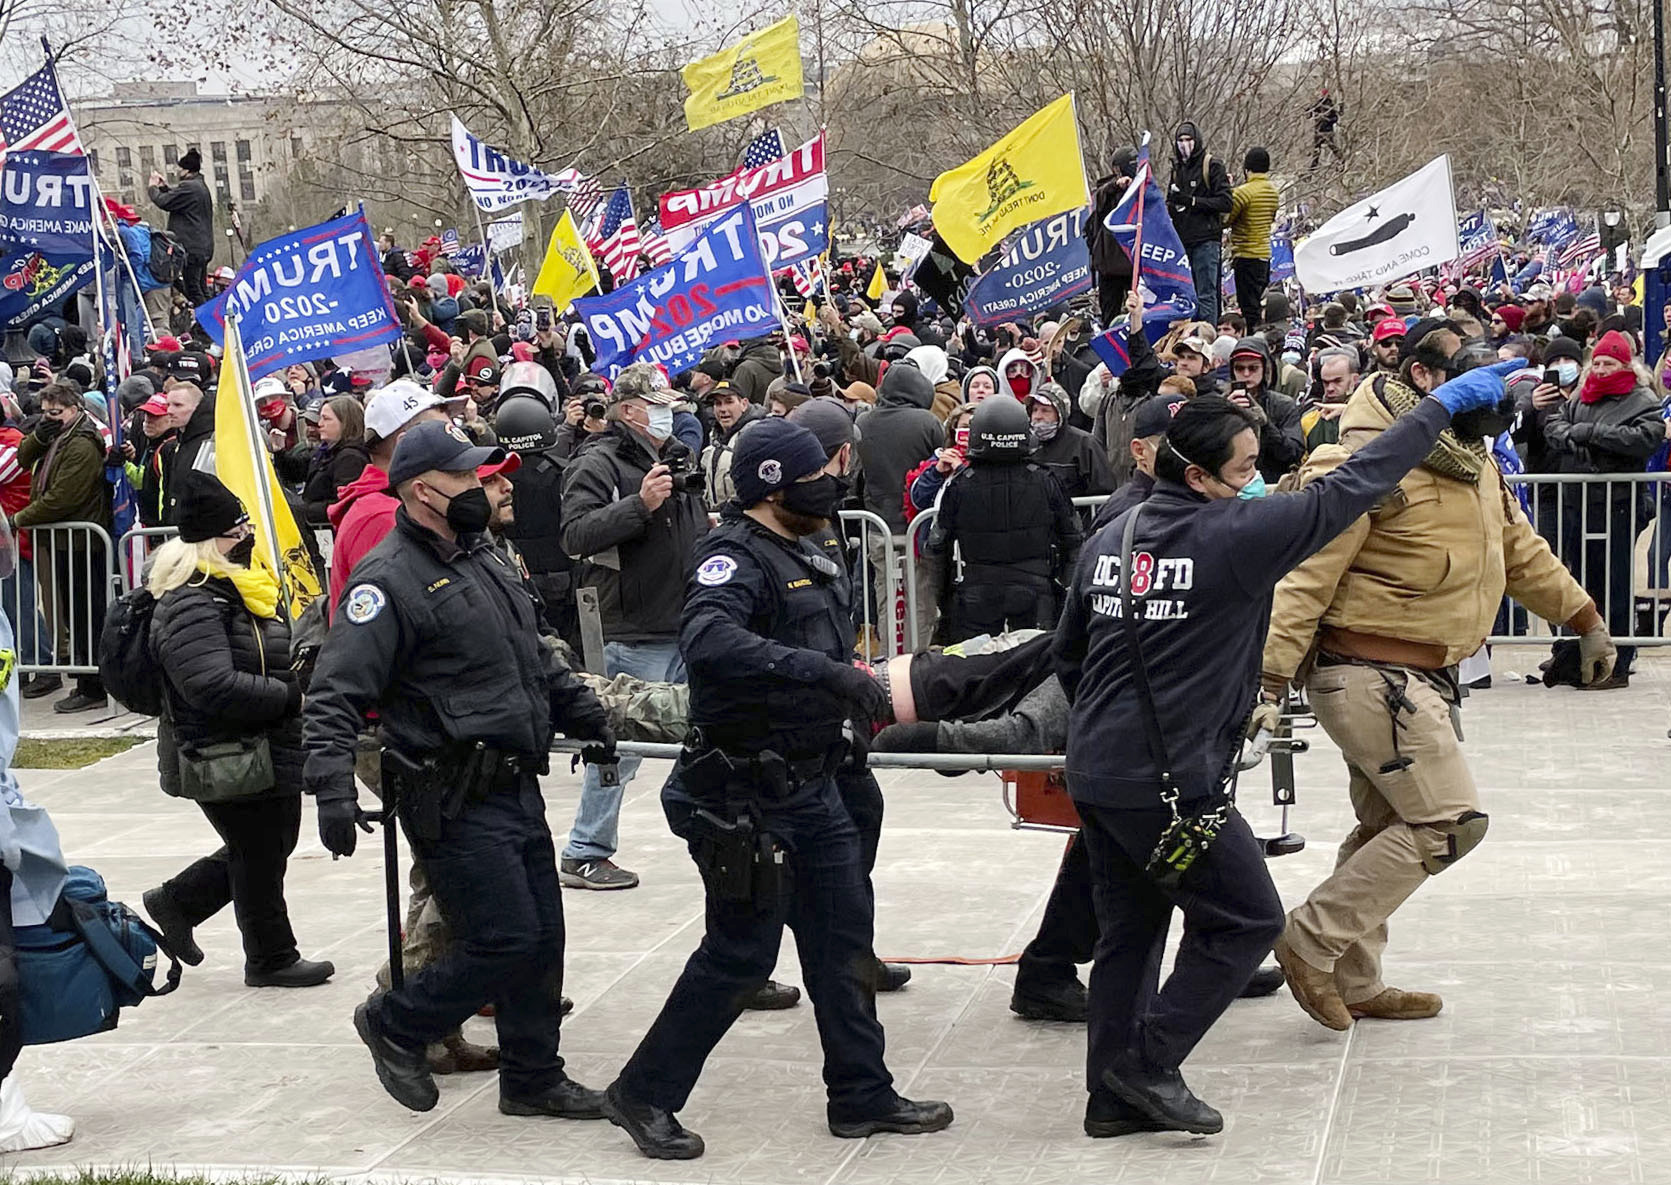 """Another Capitol Police Officer has died, this time by suicide, after responding to the Pro-Trump riot at the Capitol Building in Washington, D.C.. STAR MAX File Photo: 1/6/21 The United States Capitol Building in Washington, D.C. was breached by thousands of protesters during a """"Stop The Steal"""" rally in support of President Donald Trump during the worldwide coronavirus pandemic. The demonstrators were protesting the results of the 2020 United States presidential election where Donald Trump was defeated by Joe Biden. While there was a significant police presence attempting to keep the peace - including law enforcement officers and agents from The U.S. Capitol Police, The Virginia State Police, The Metropolitan Police of The District of Columbia, The National Guard, and The FBI - demonstrators used chemical irritants to breach the interior of The Capitol Building. This, while the Democratic Party gained control of The United States Senate - sweeping the Georgia Runoff Election and securing two additional seats. (Washington, D.C.)"""